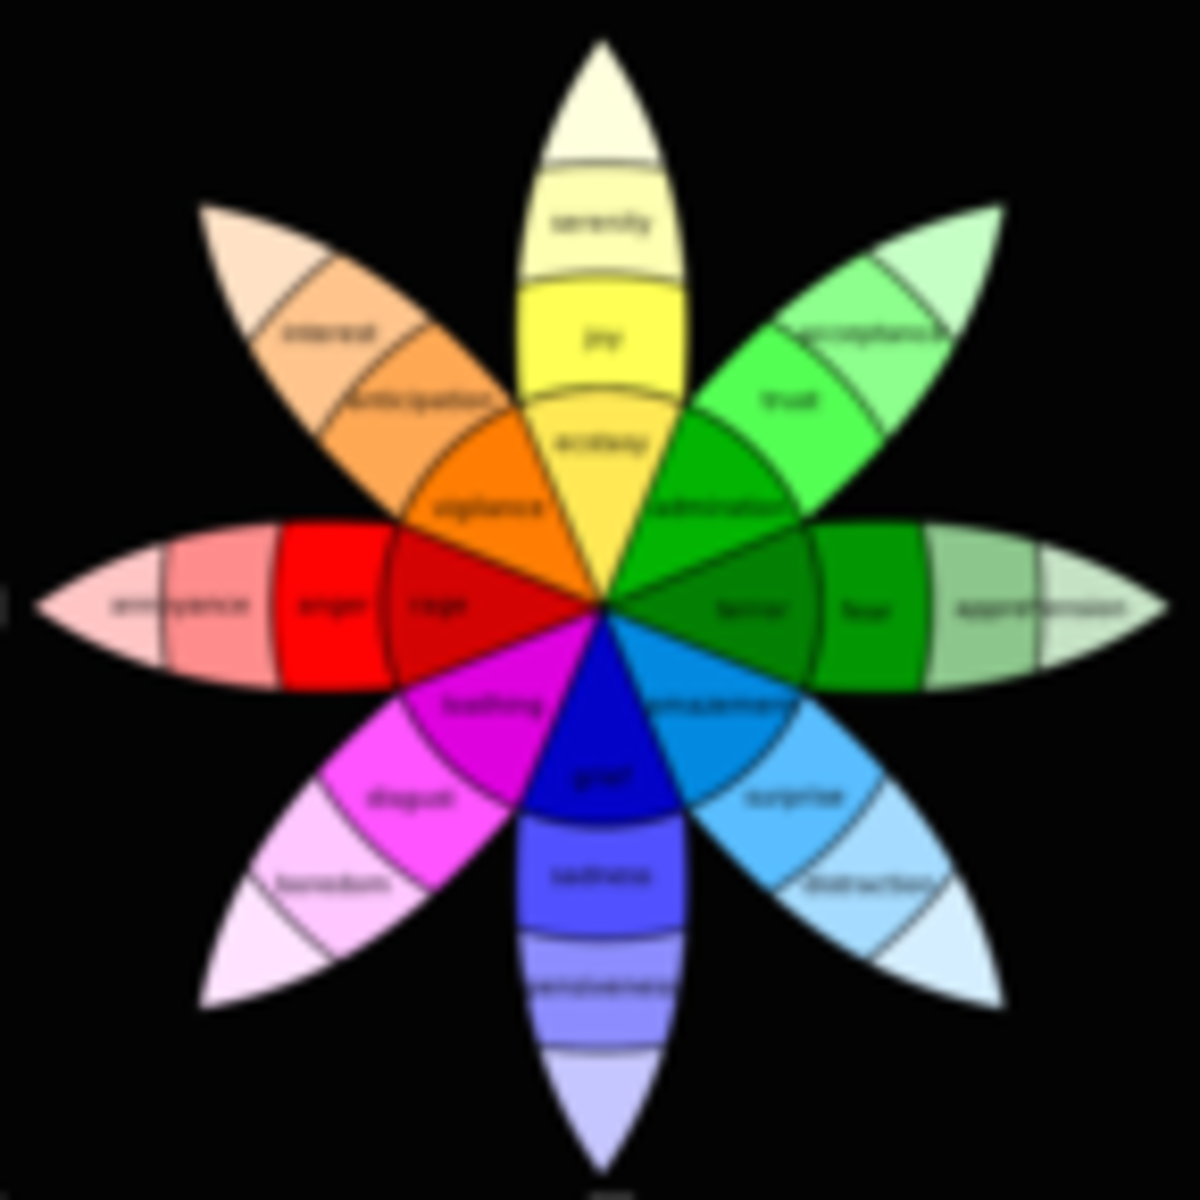 What Are Basic Emotions? | Psychology Today